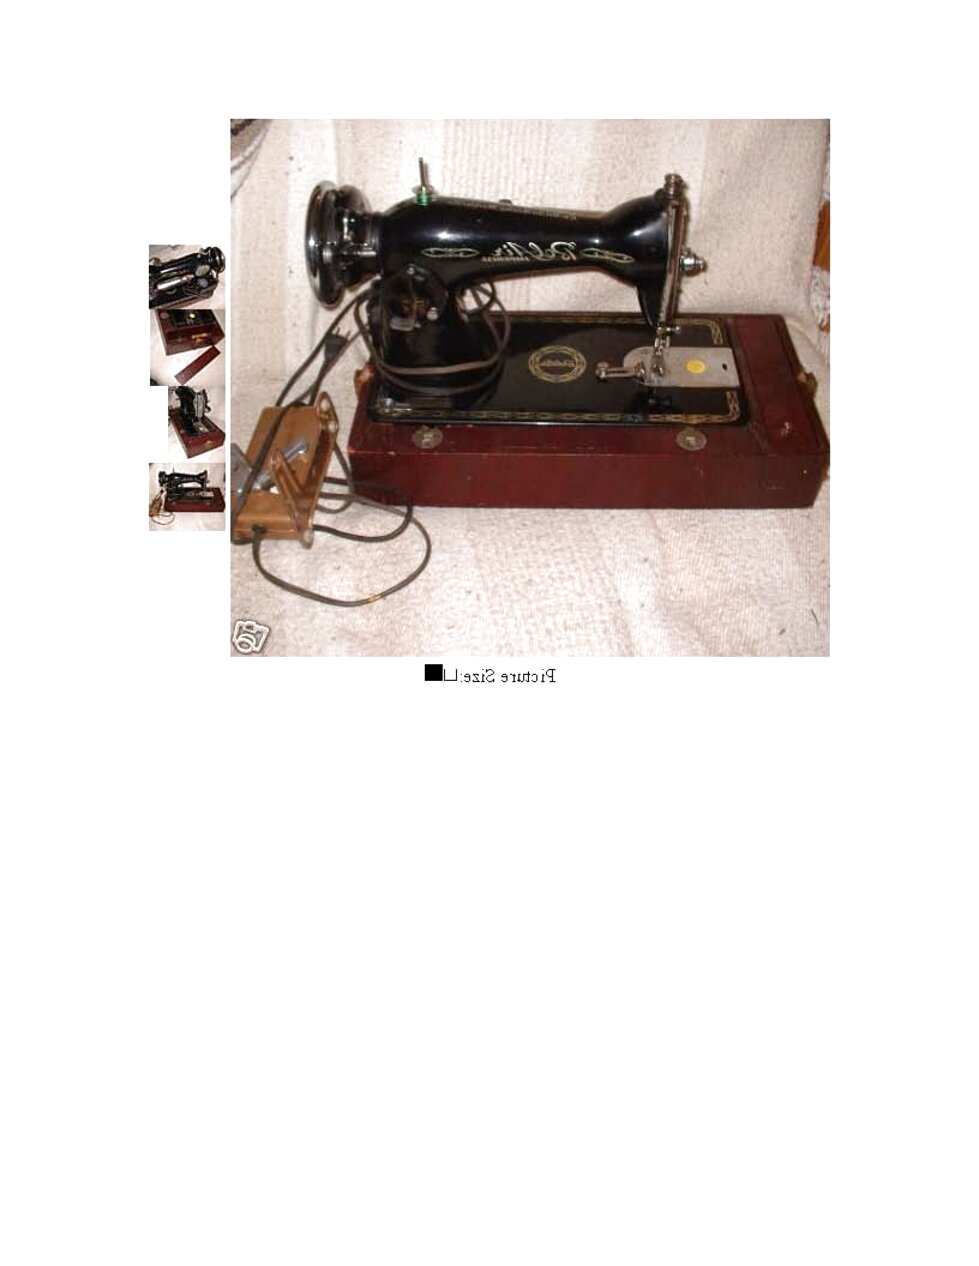 Singer Featherweight For Sale Craigslist : singer, featherweight, craigslist, Imperial, Sewing, Machine, Canada